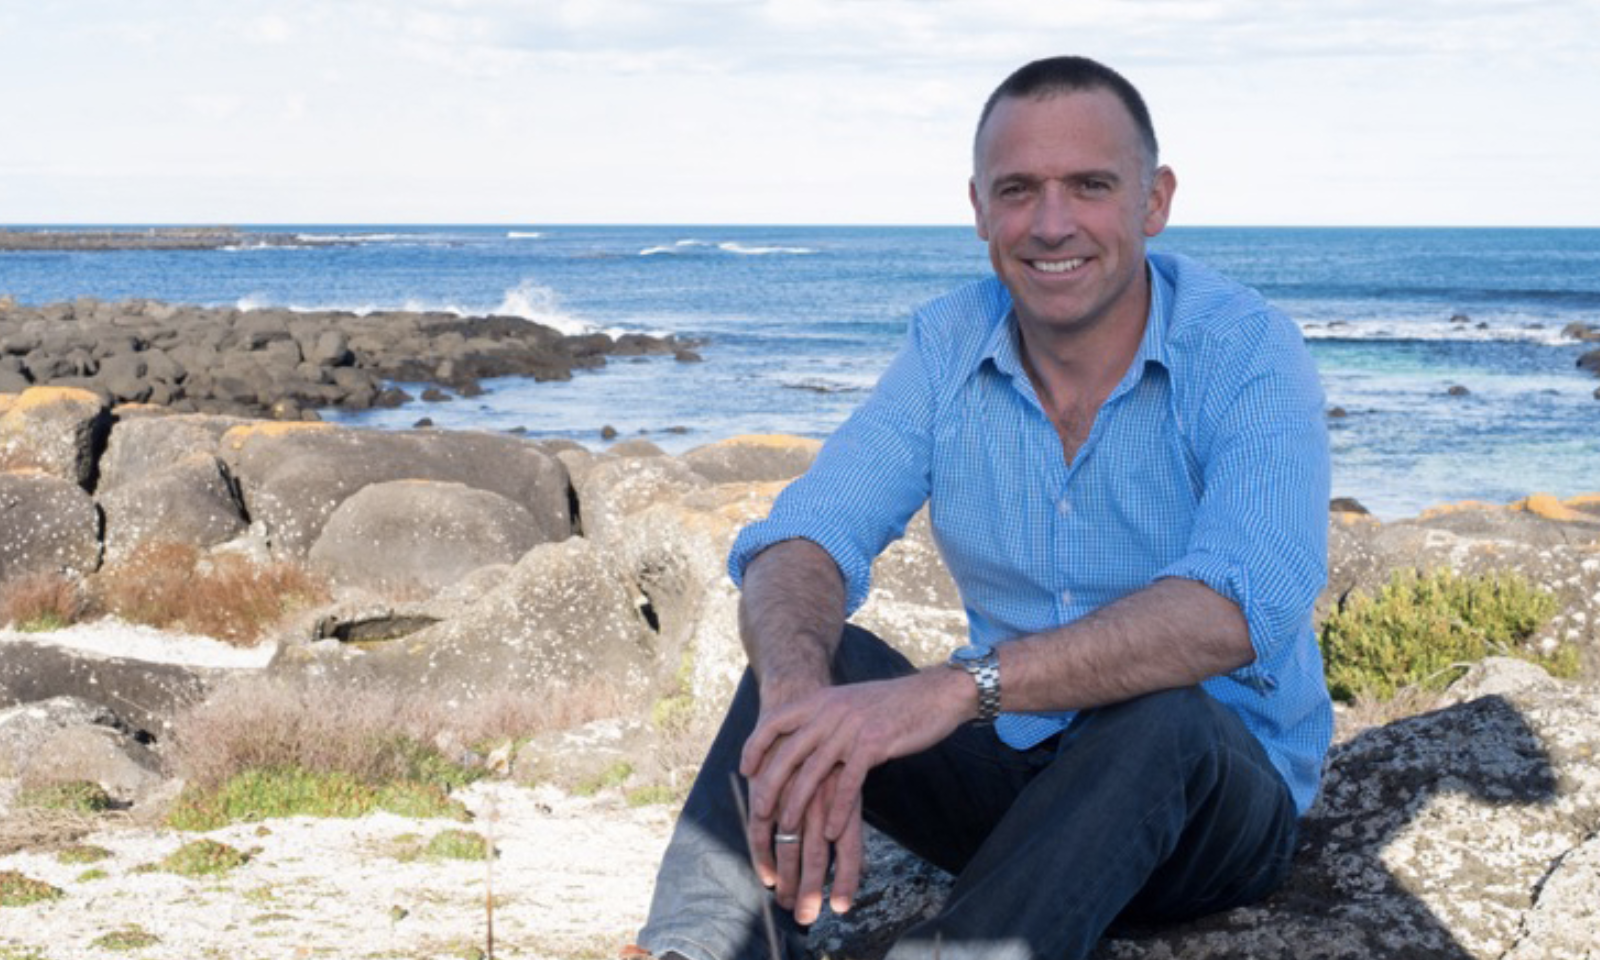 Jock Serong releases new novel based on a shipwreck north of Tasmania in 1797